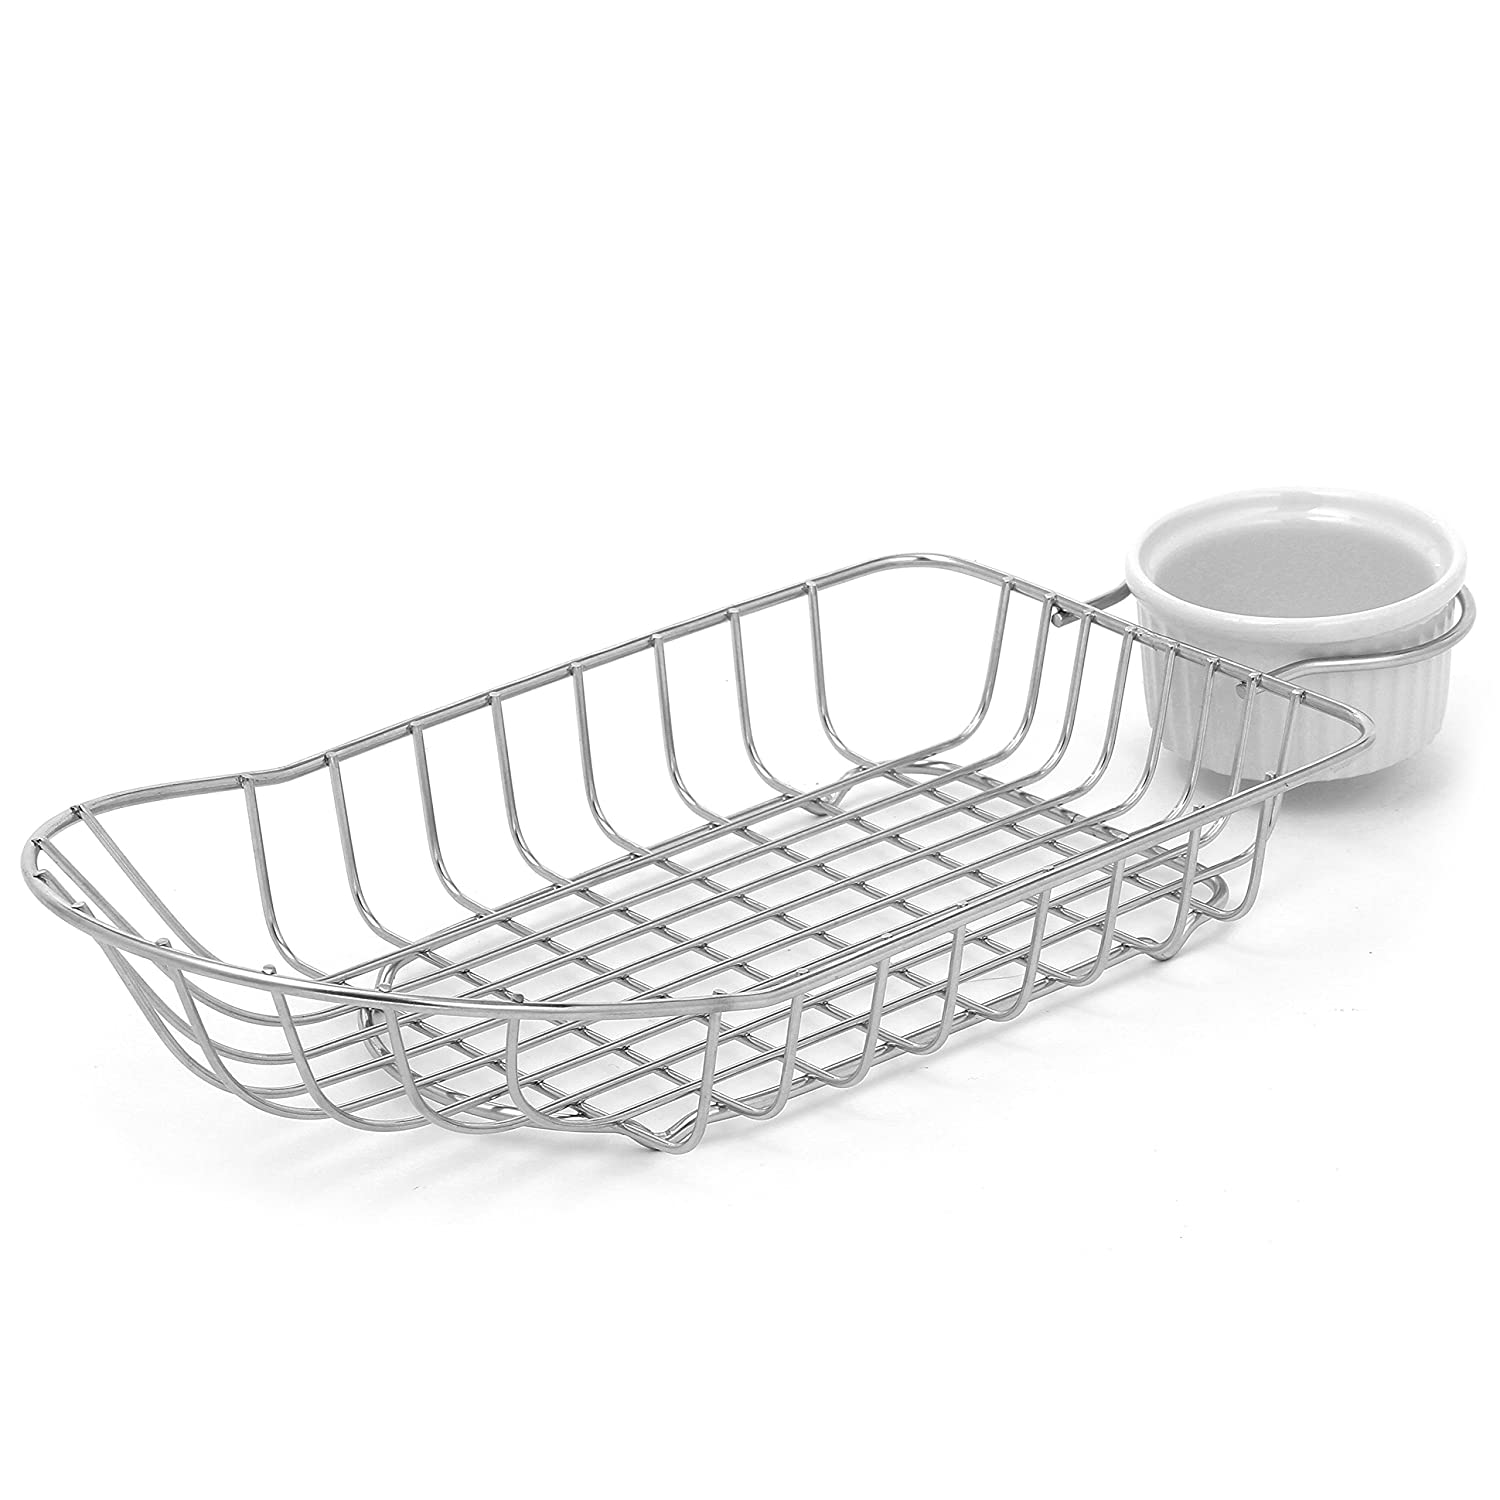 Stainless Steel French Fries Serving Basket with Ceramic Ramekin MyGift TB-KIT0804SIL